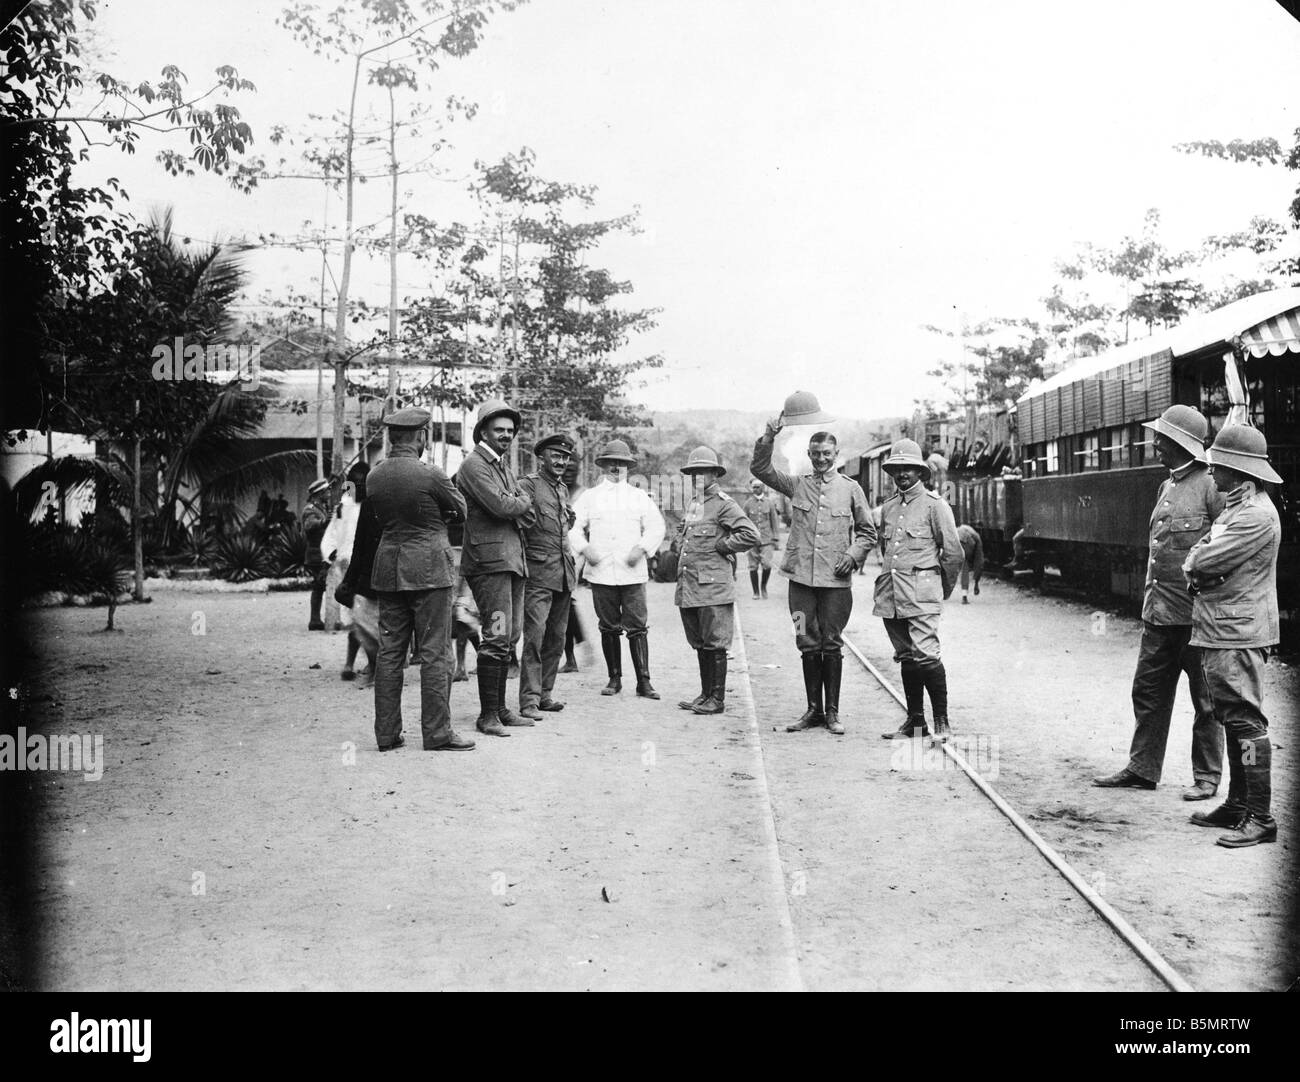 9AF 1914 0 0 A4 3 Station in German East Africa Photo World War I War in the colonies German East Africa today Tanzania - Stock Image